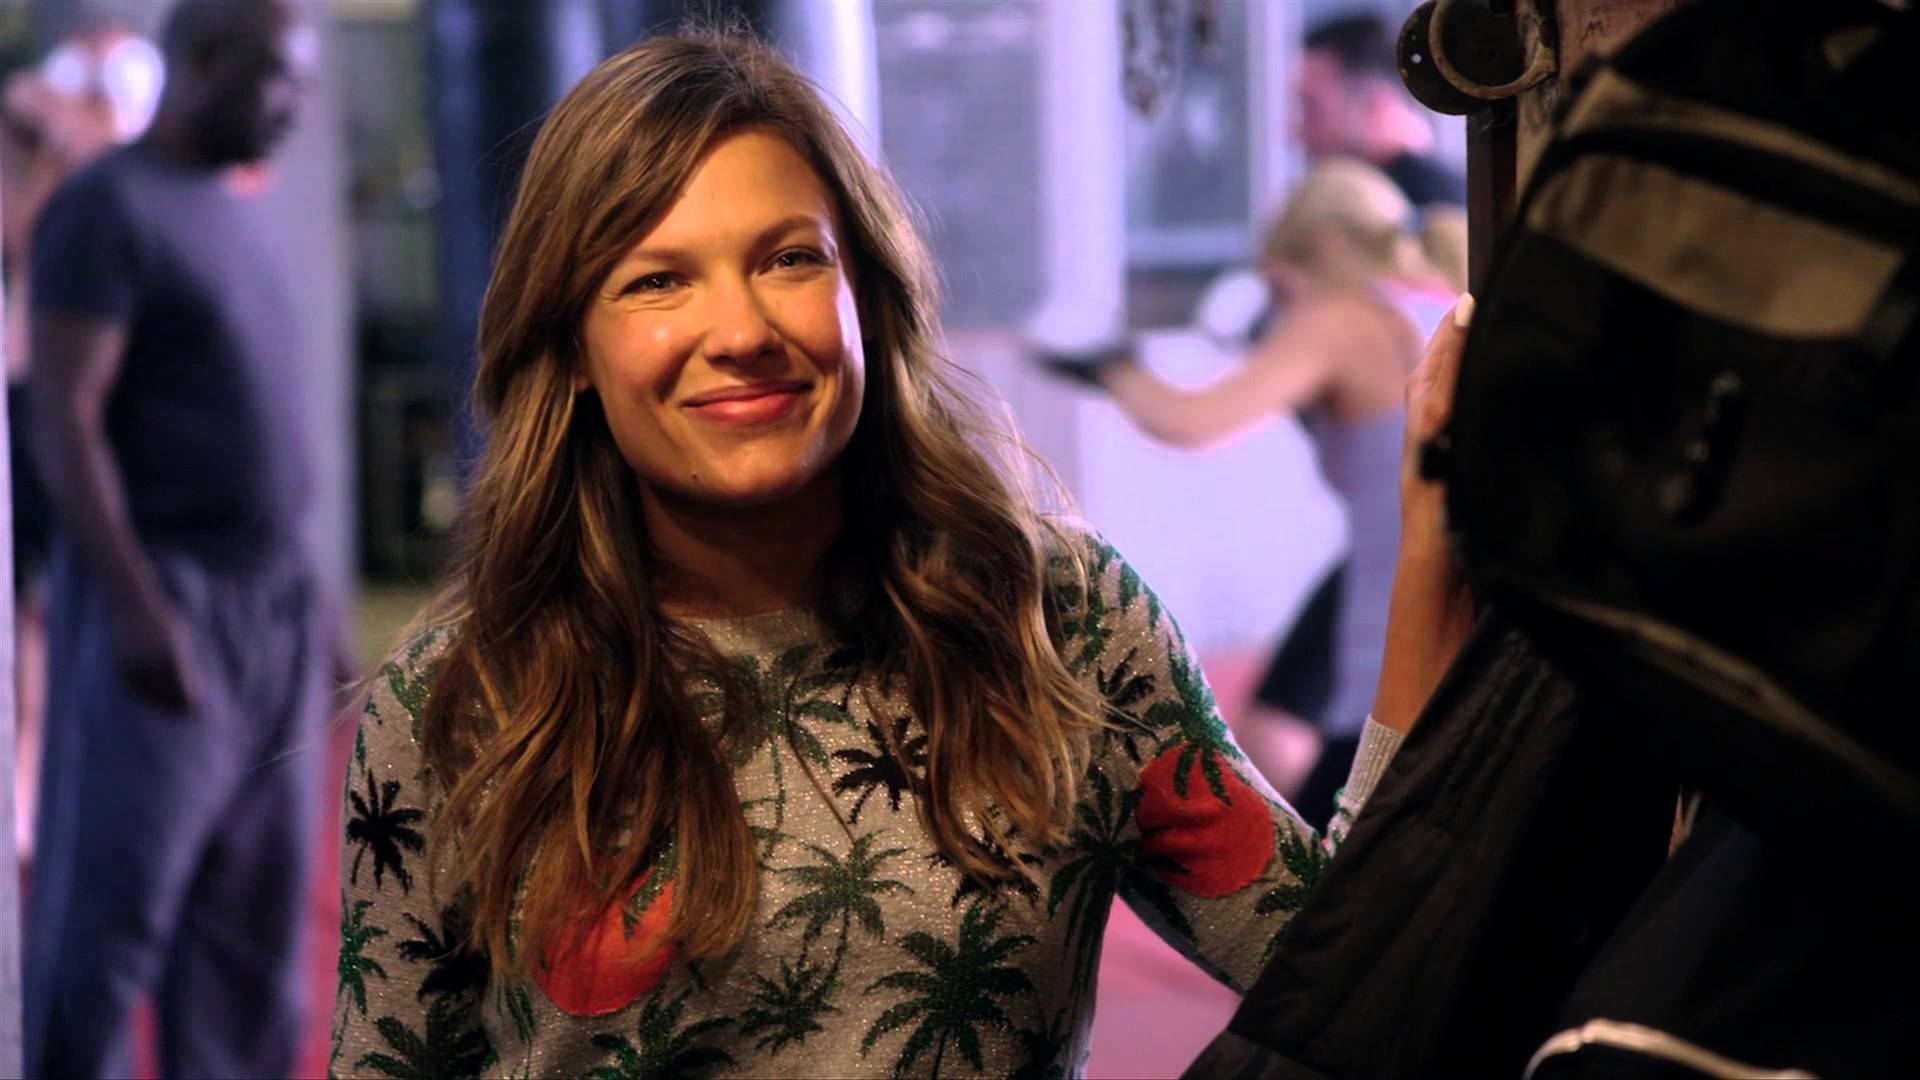 Kiele Sanchez Full HD